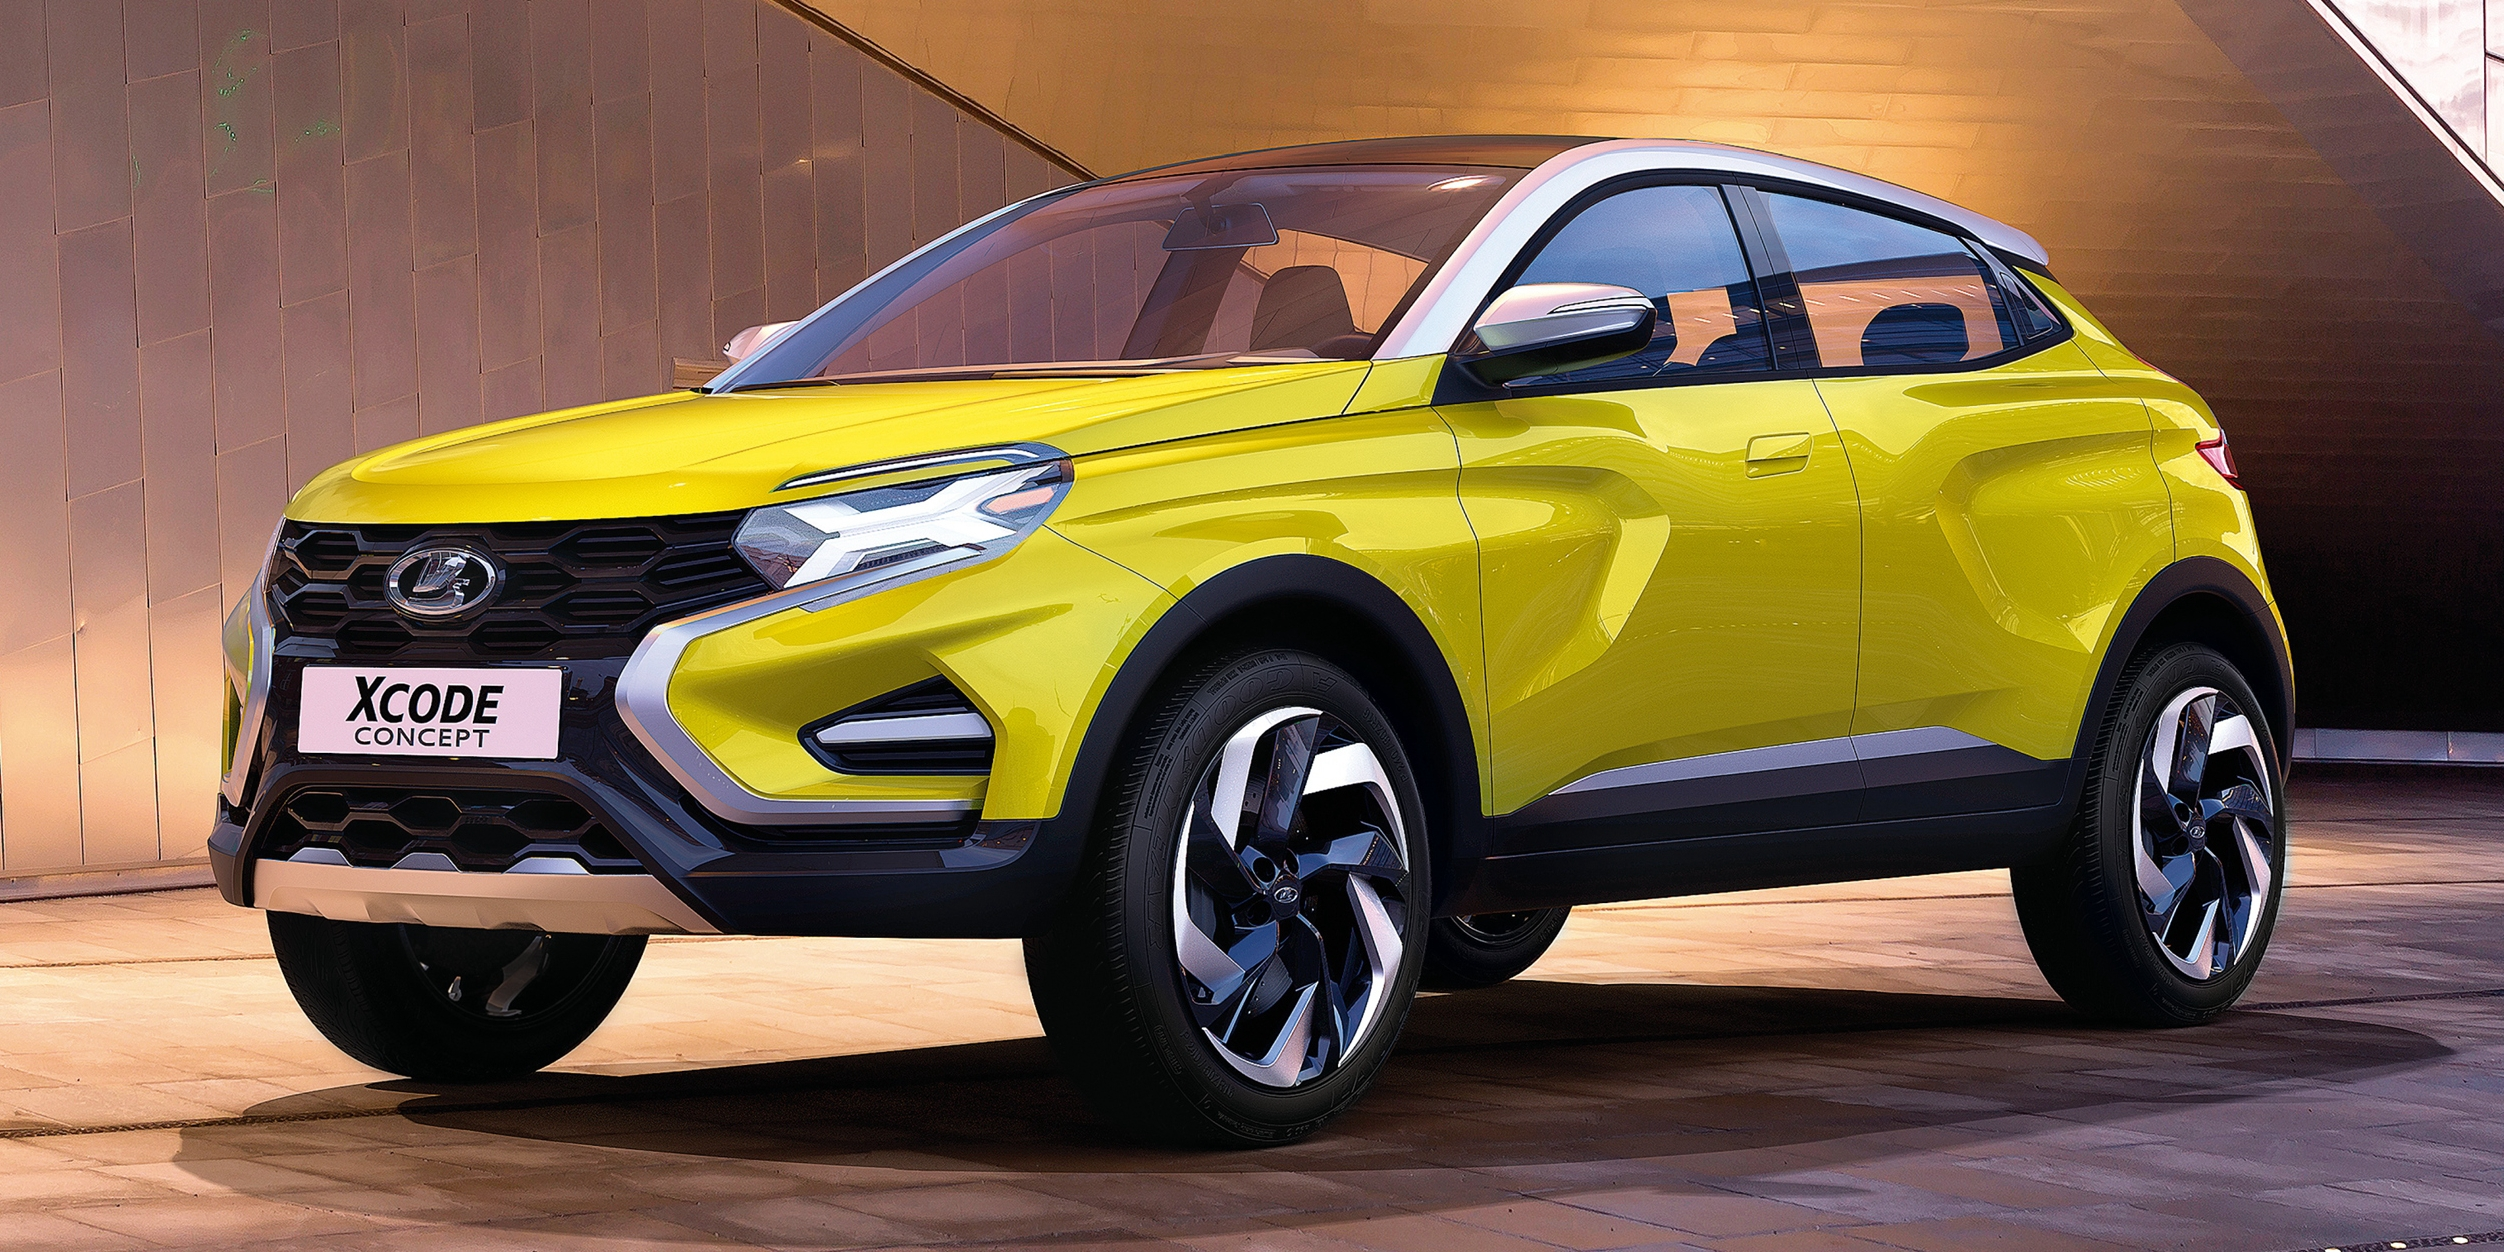 Suv 2018 Models >> Lada XCODE Concept SUV breaks cover in Moscow Image 541240